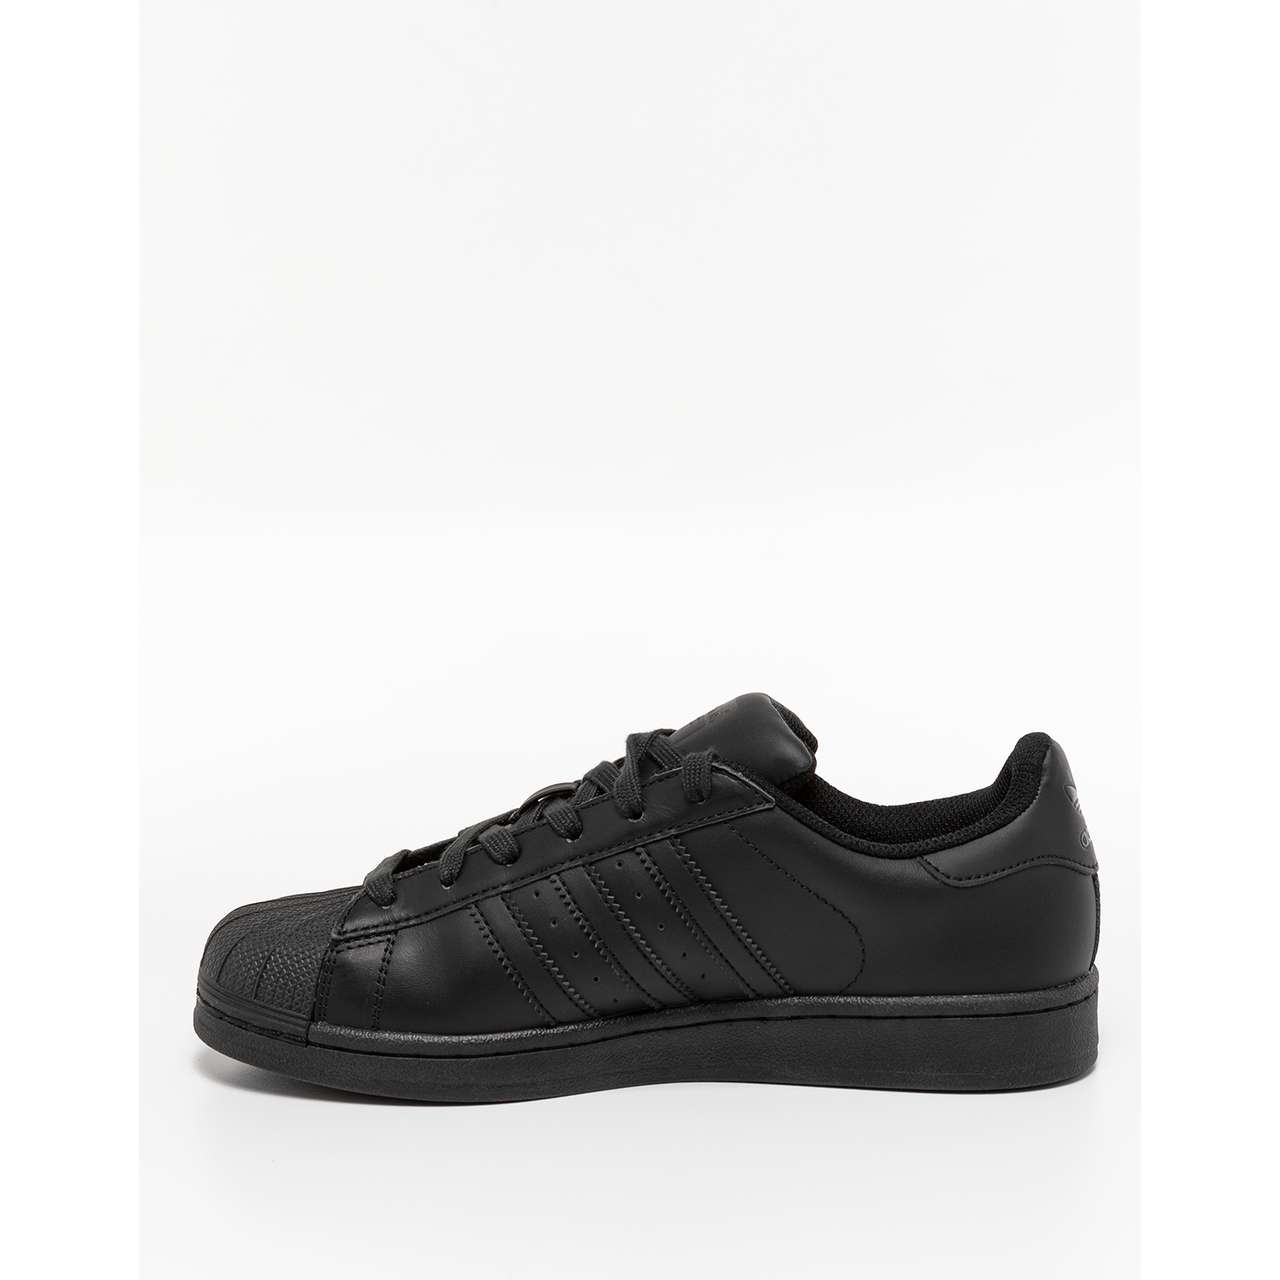 f146f3c2e598d ... Foundation 666 </small> Buty adidas <br/><small>Superstar ...